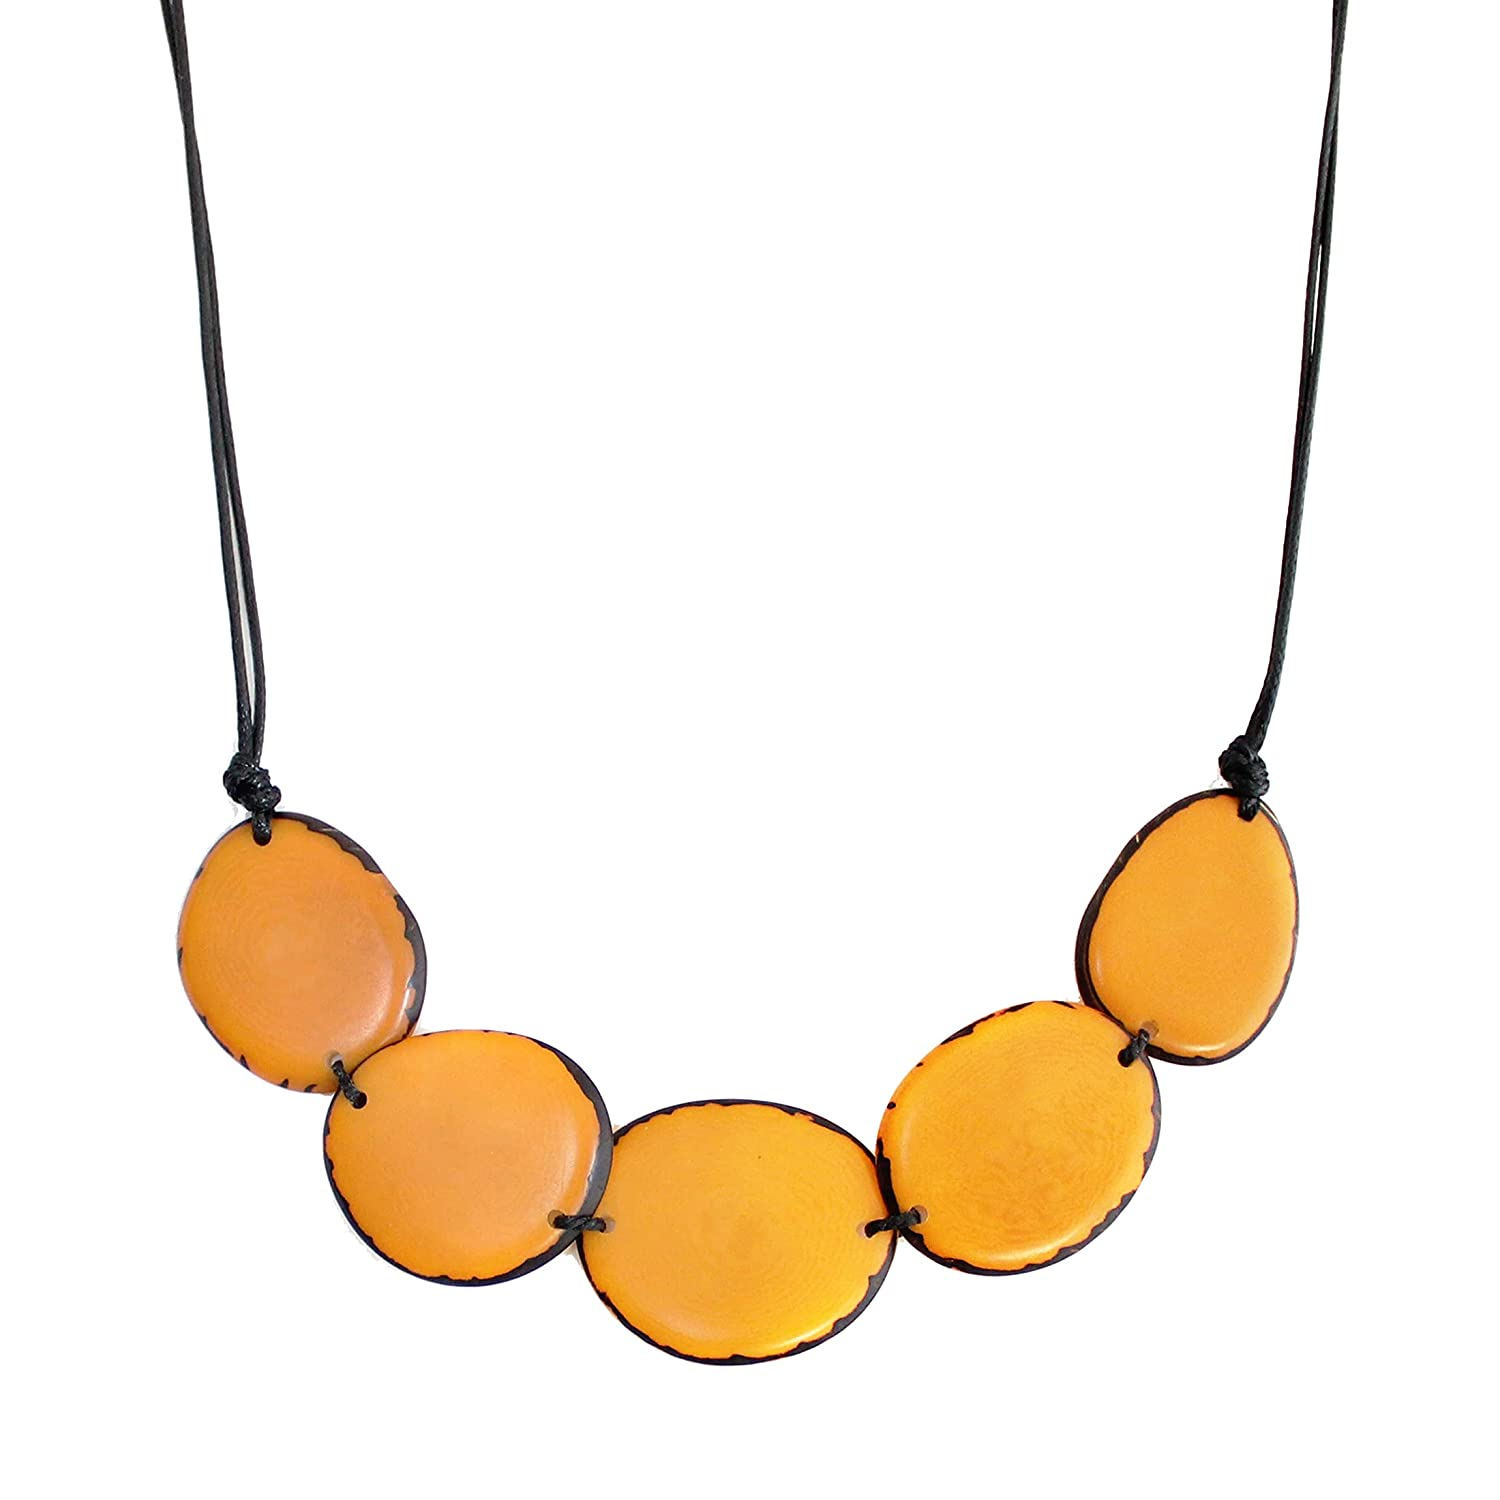 Manufacturer regenerated product Tagua Nut Necklace Yellow Chips Trade Fair Adjustable Handmade Ranking TOP4